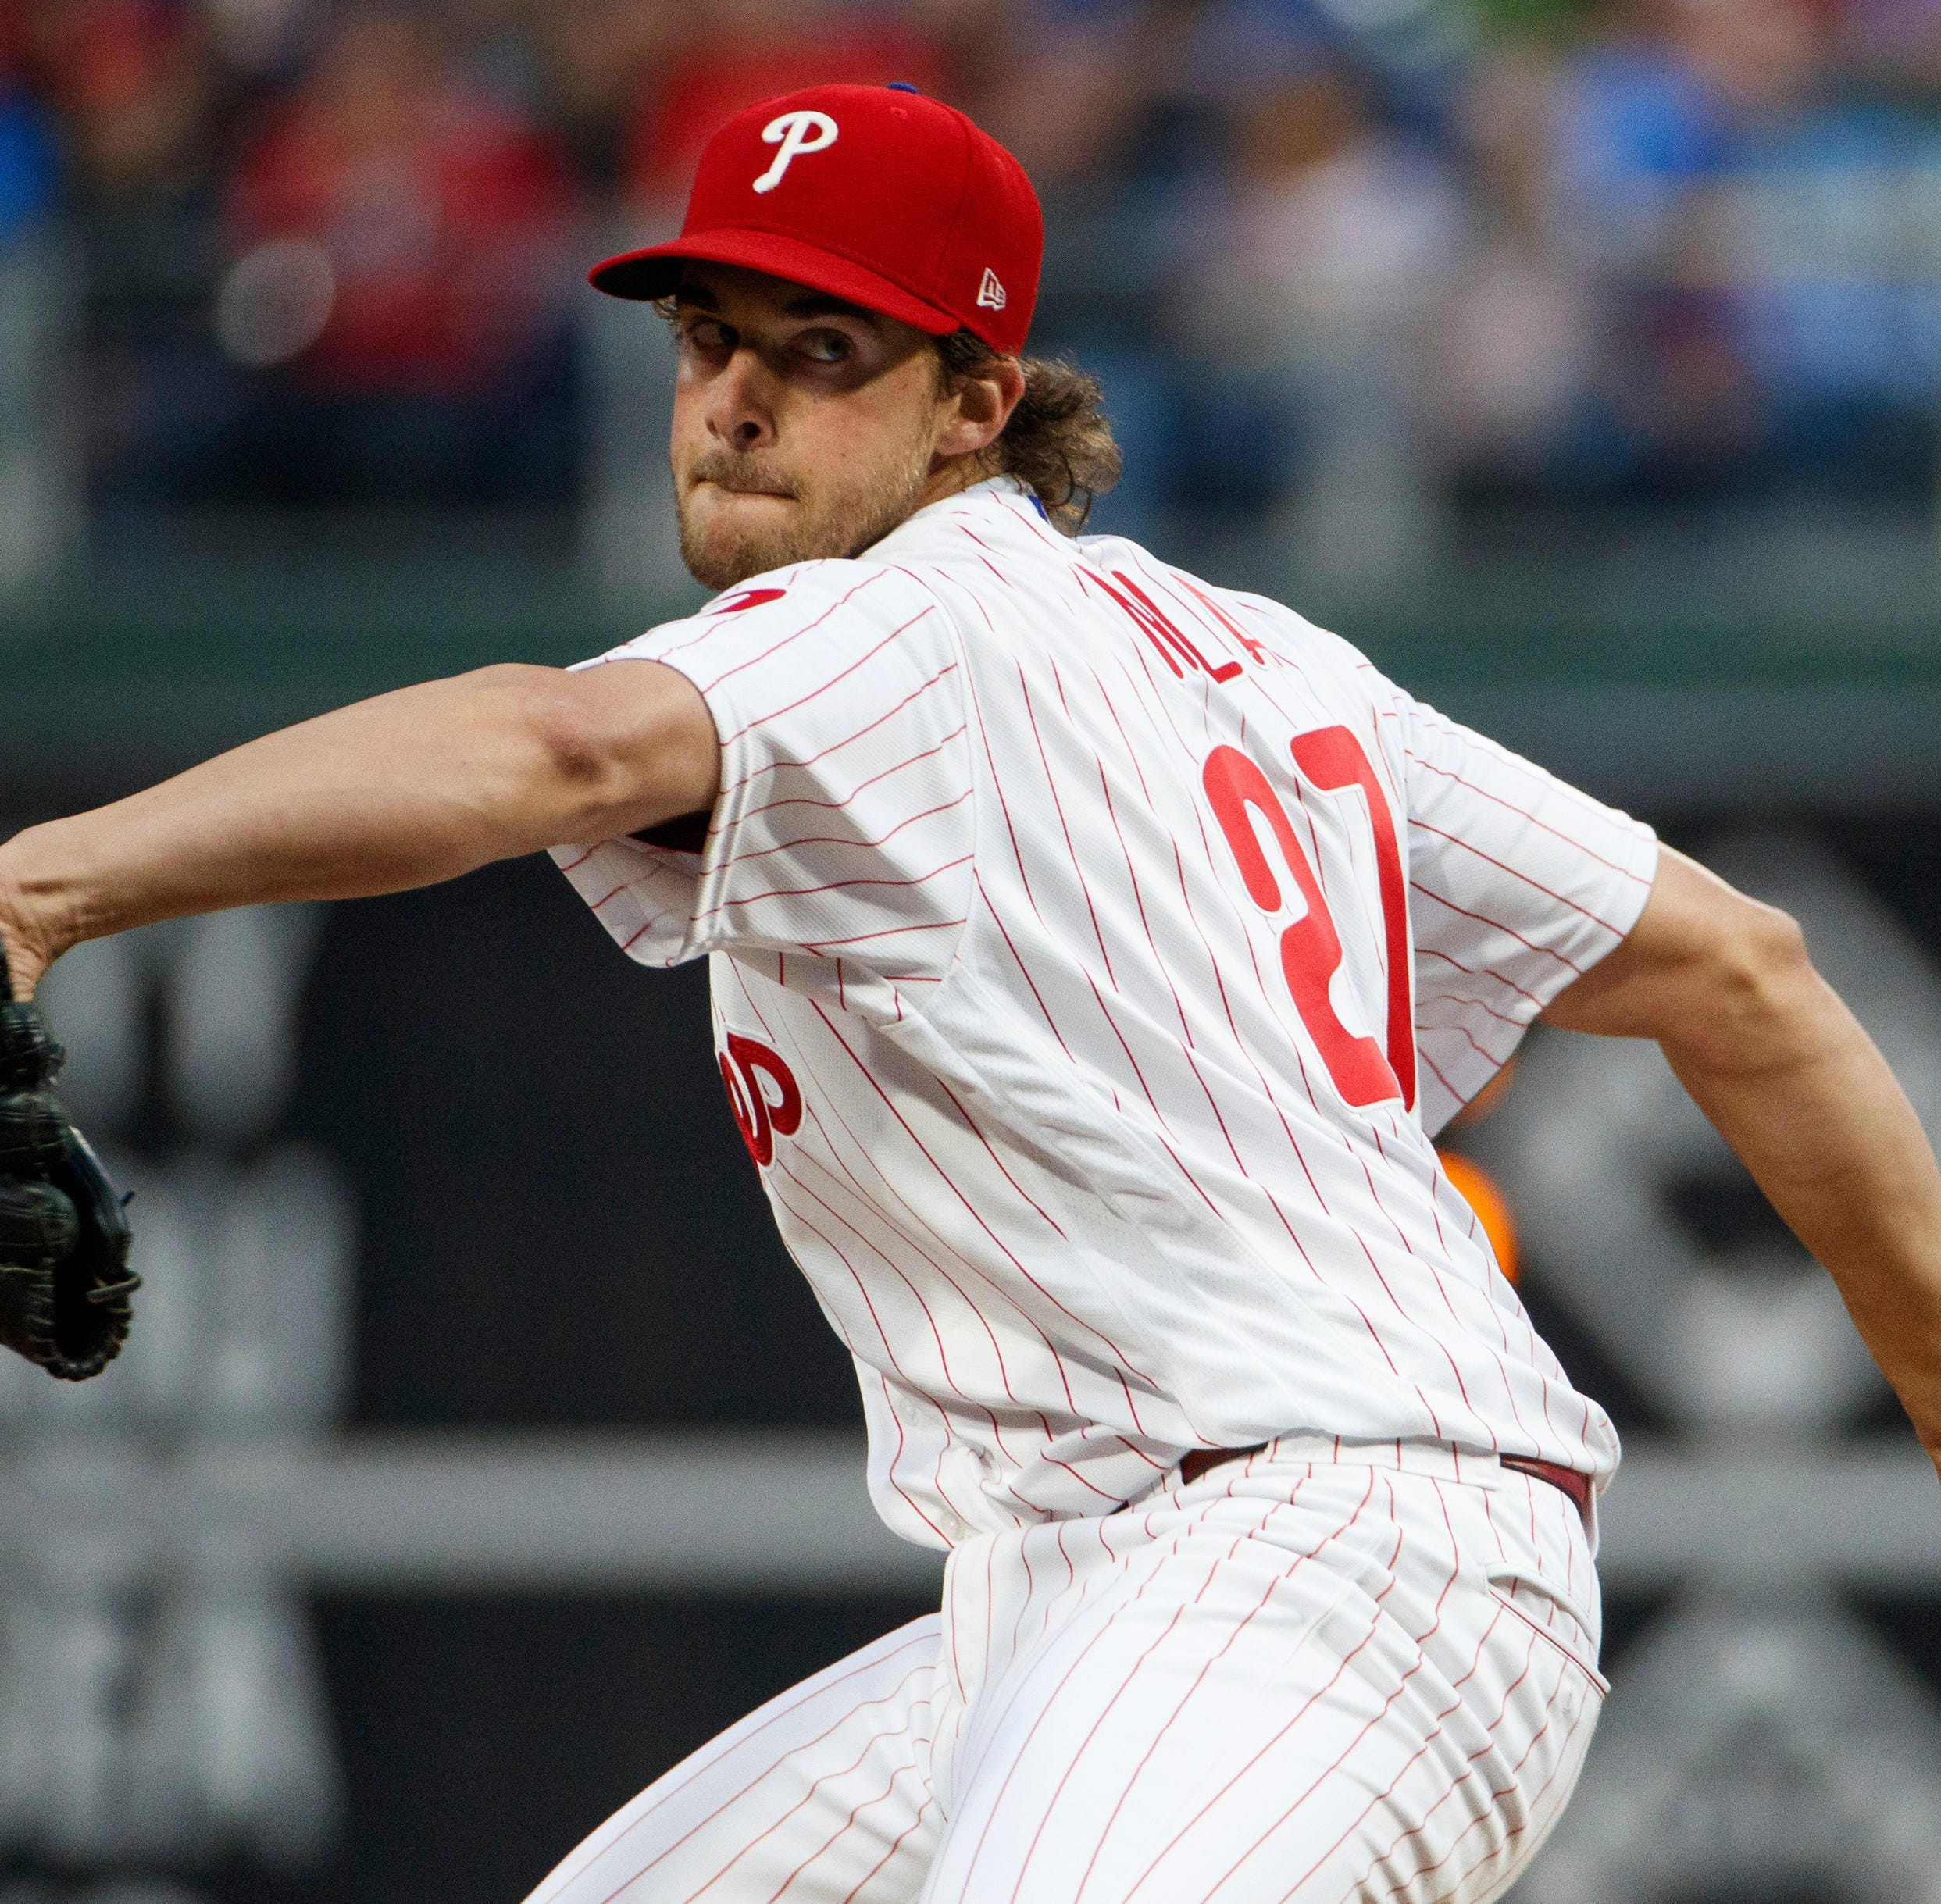 Lineup for Phillies-Mets: Nola, Syndergaard to duel